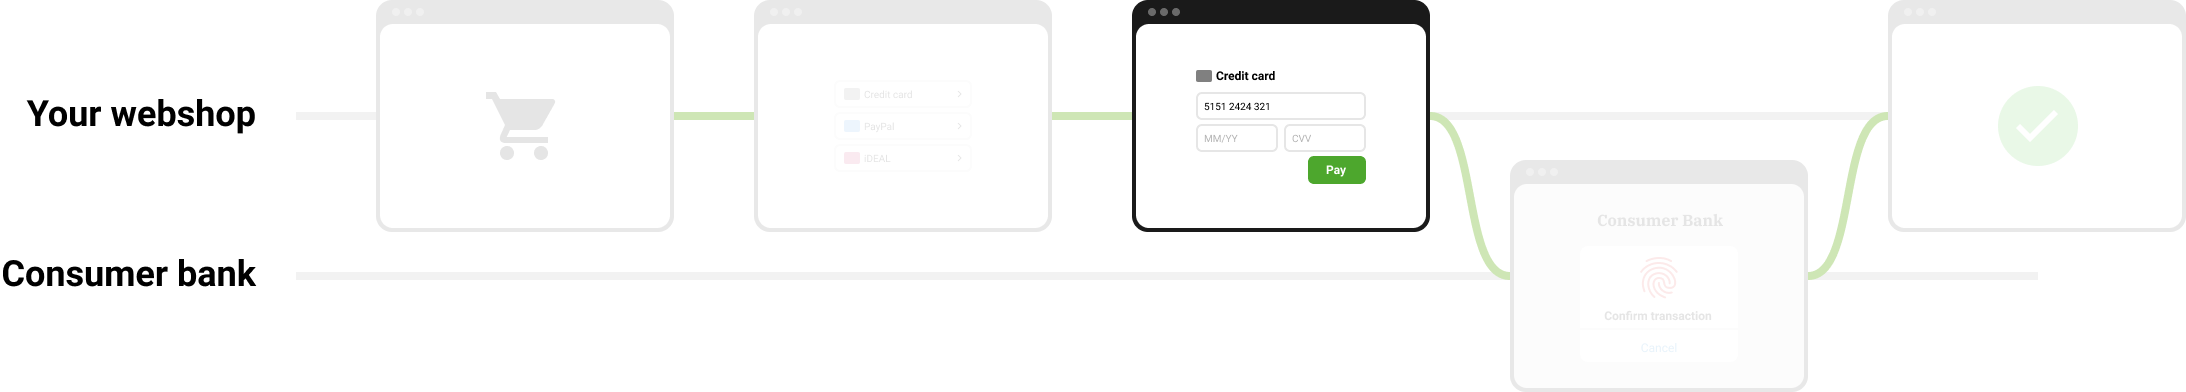 https://assets.docs.mollie.com/_images/checkout-flow-embedded-credit-card-fields@2x.png